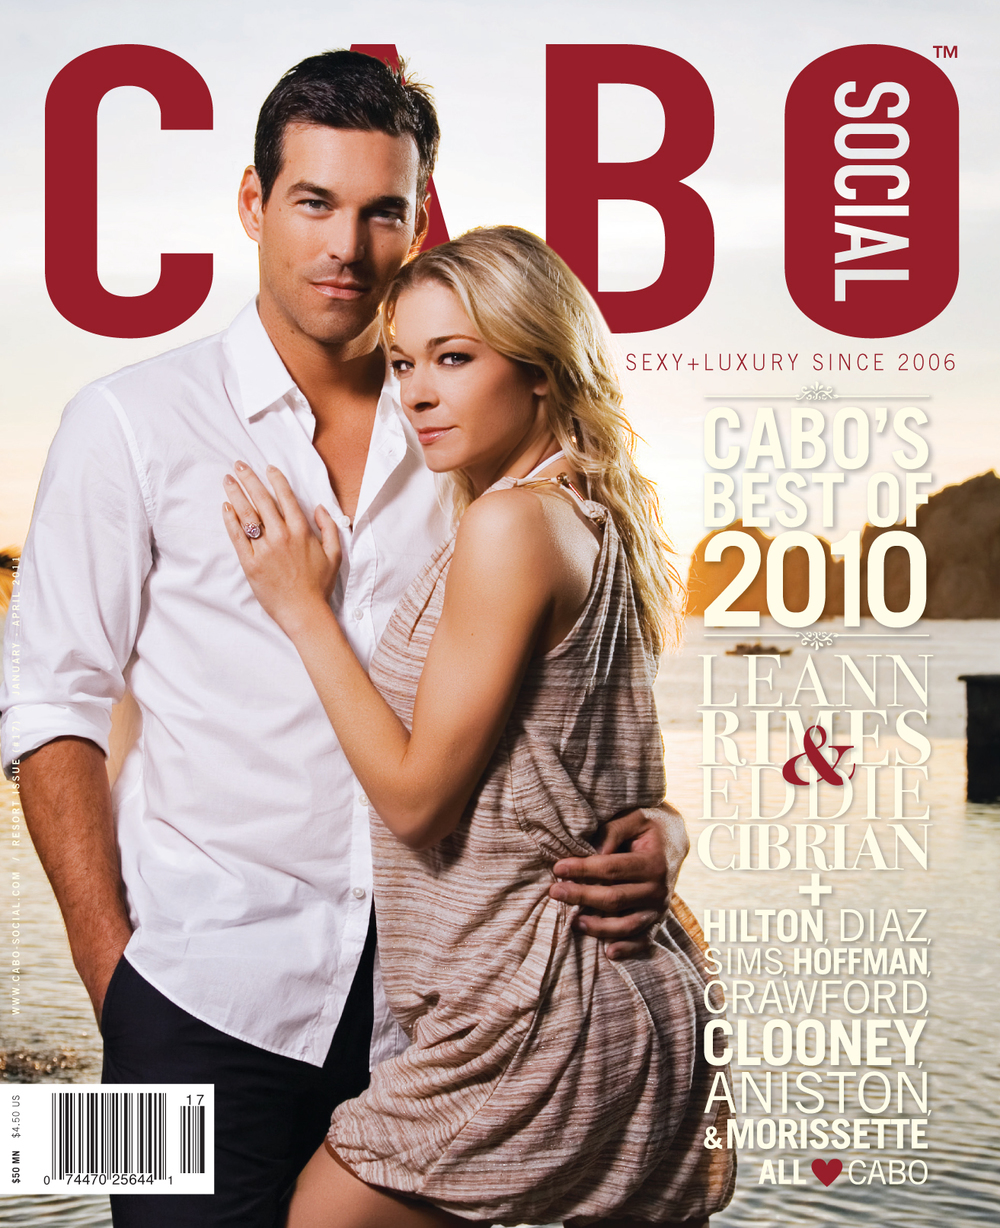 cabo-social-magazine-issue-17.jpg